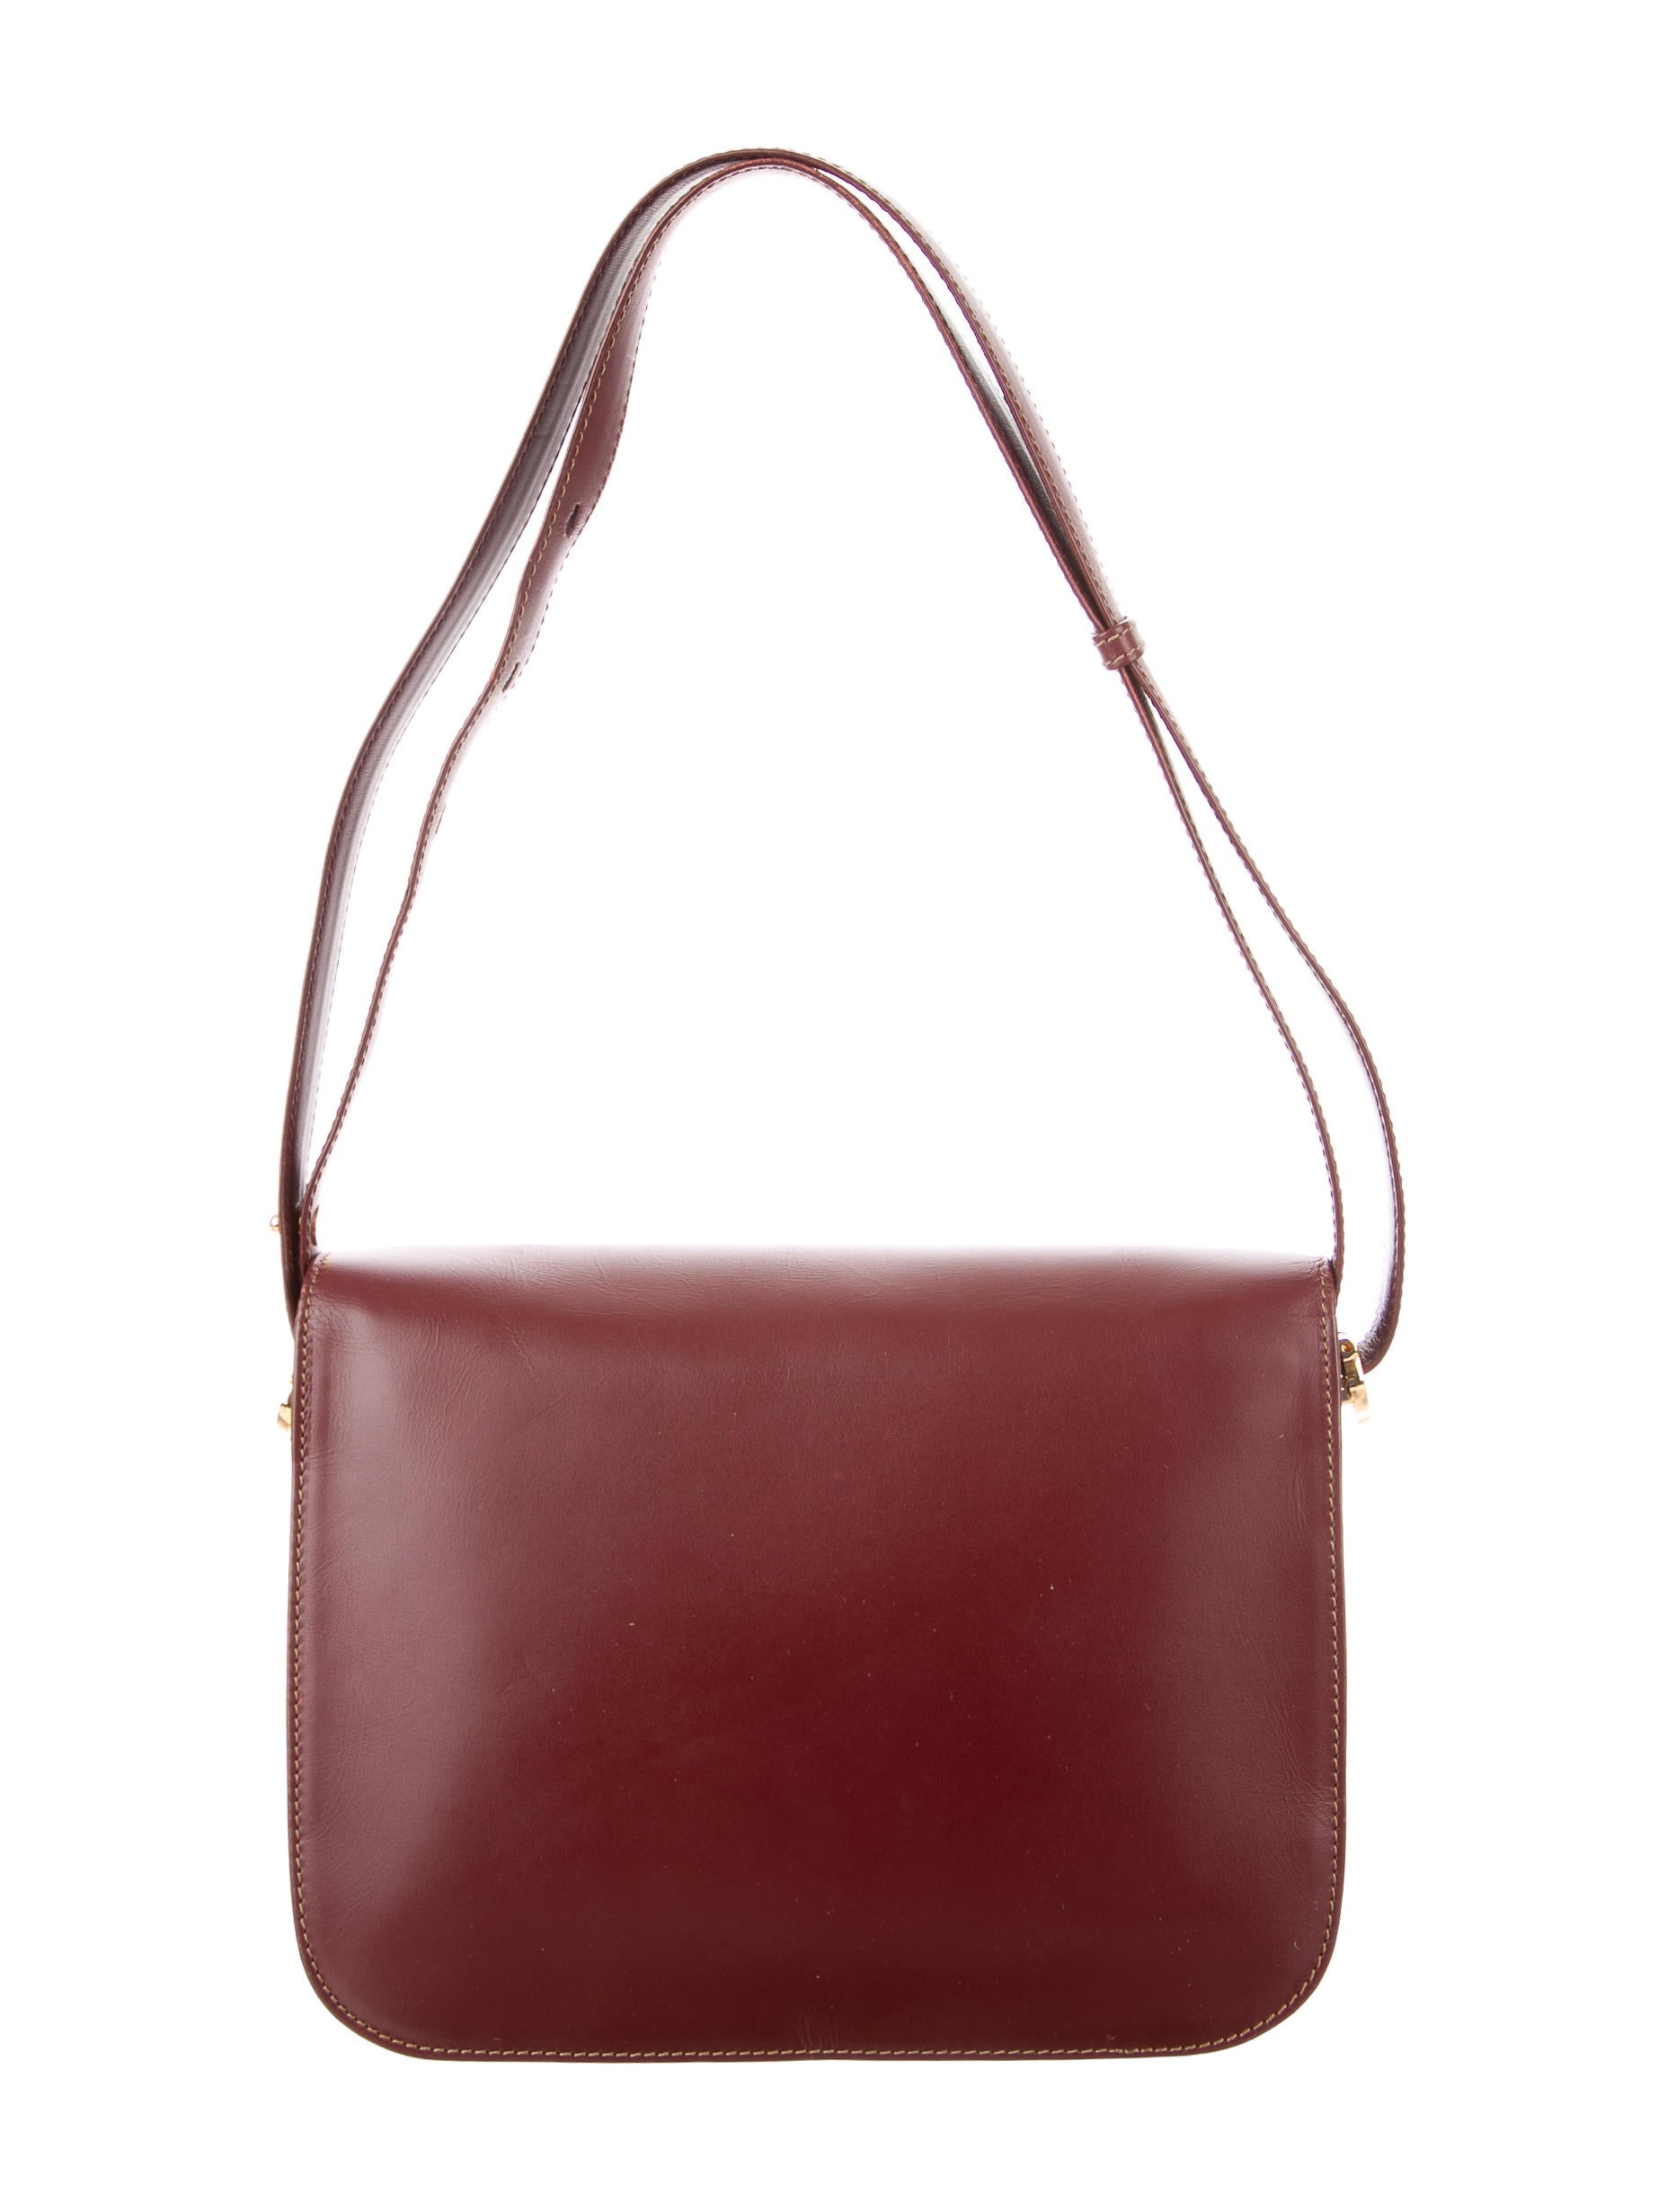 Cartier Leather Shoulder Bag - Handbags - CRT30465 : The RealReal